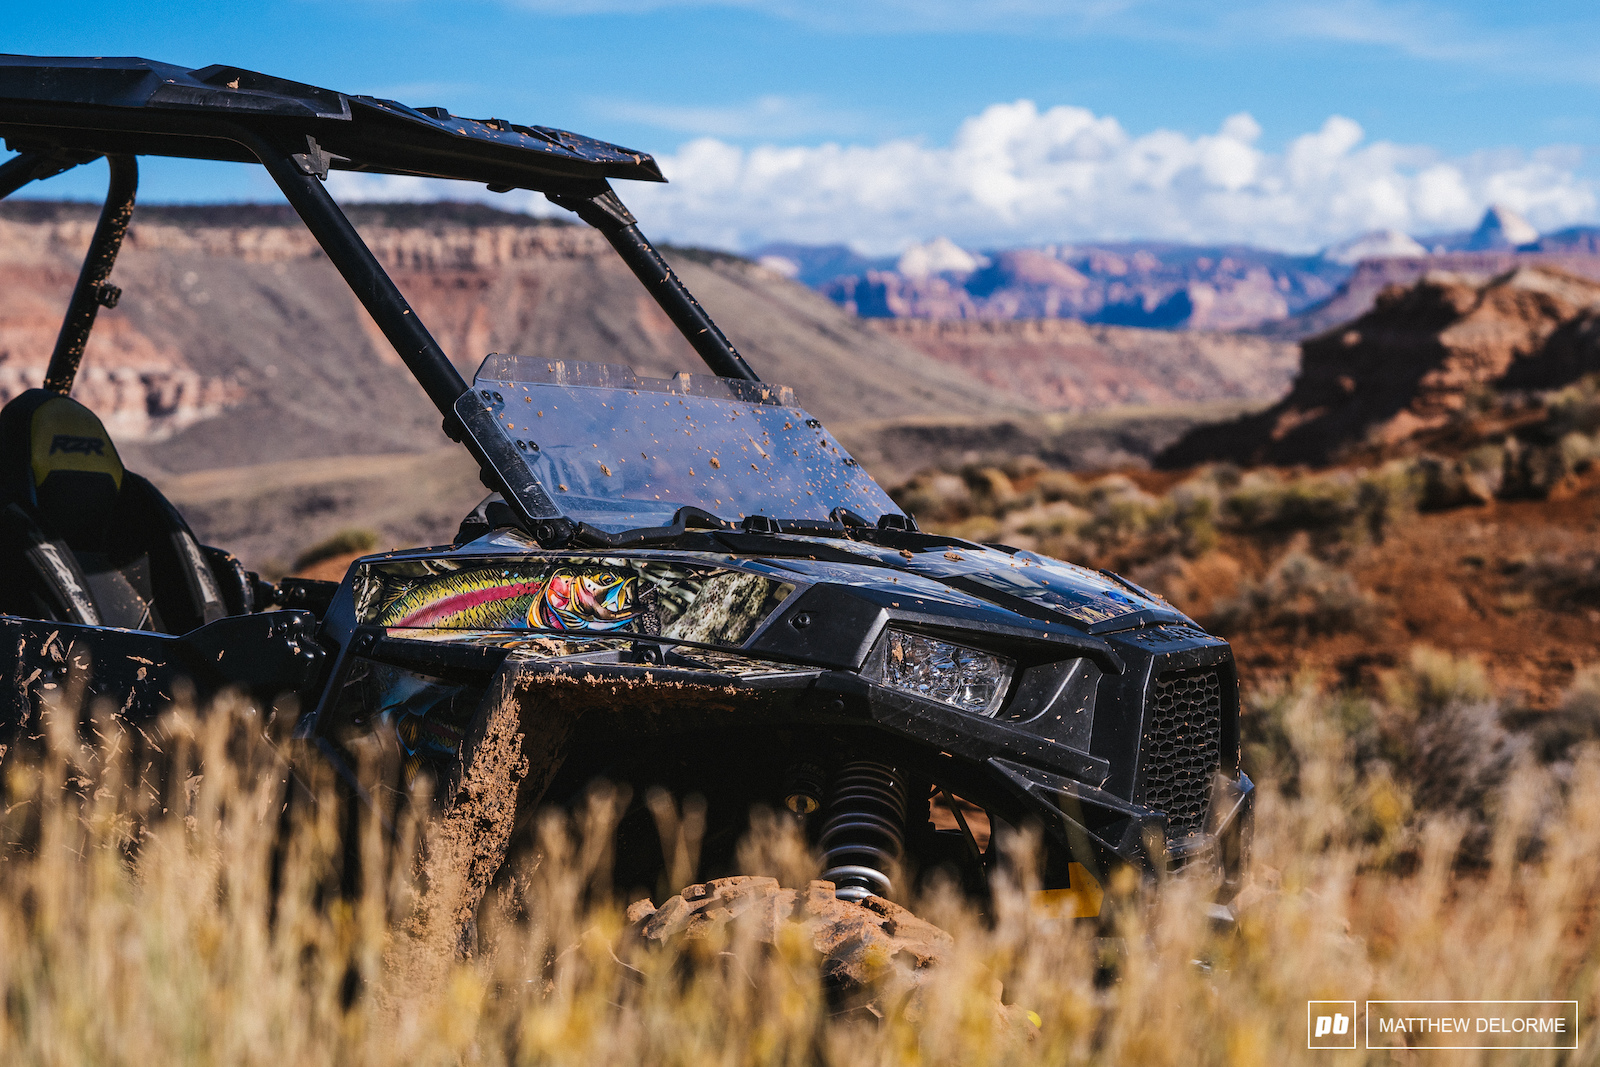 Best RZR out there belongs to Aggy.